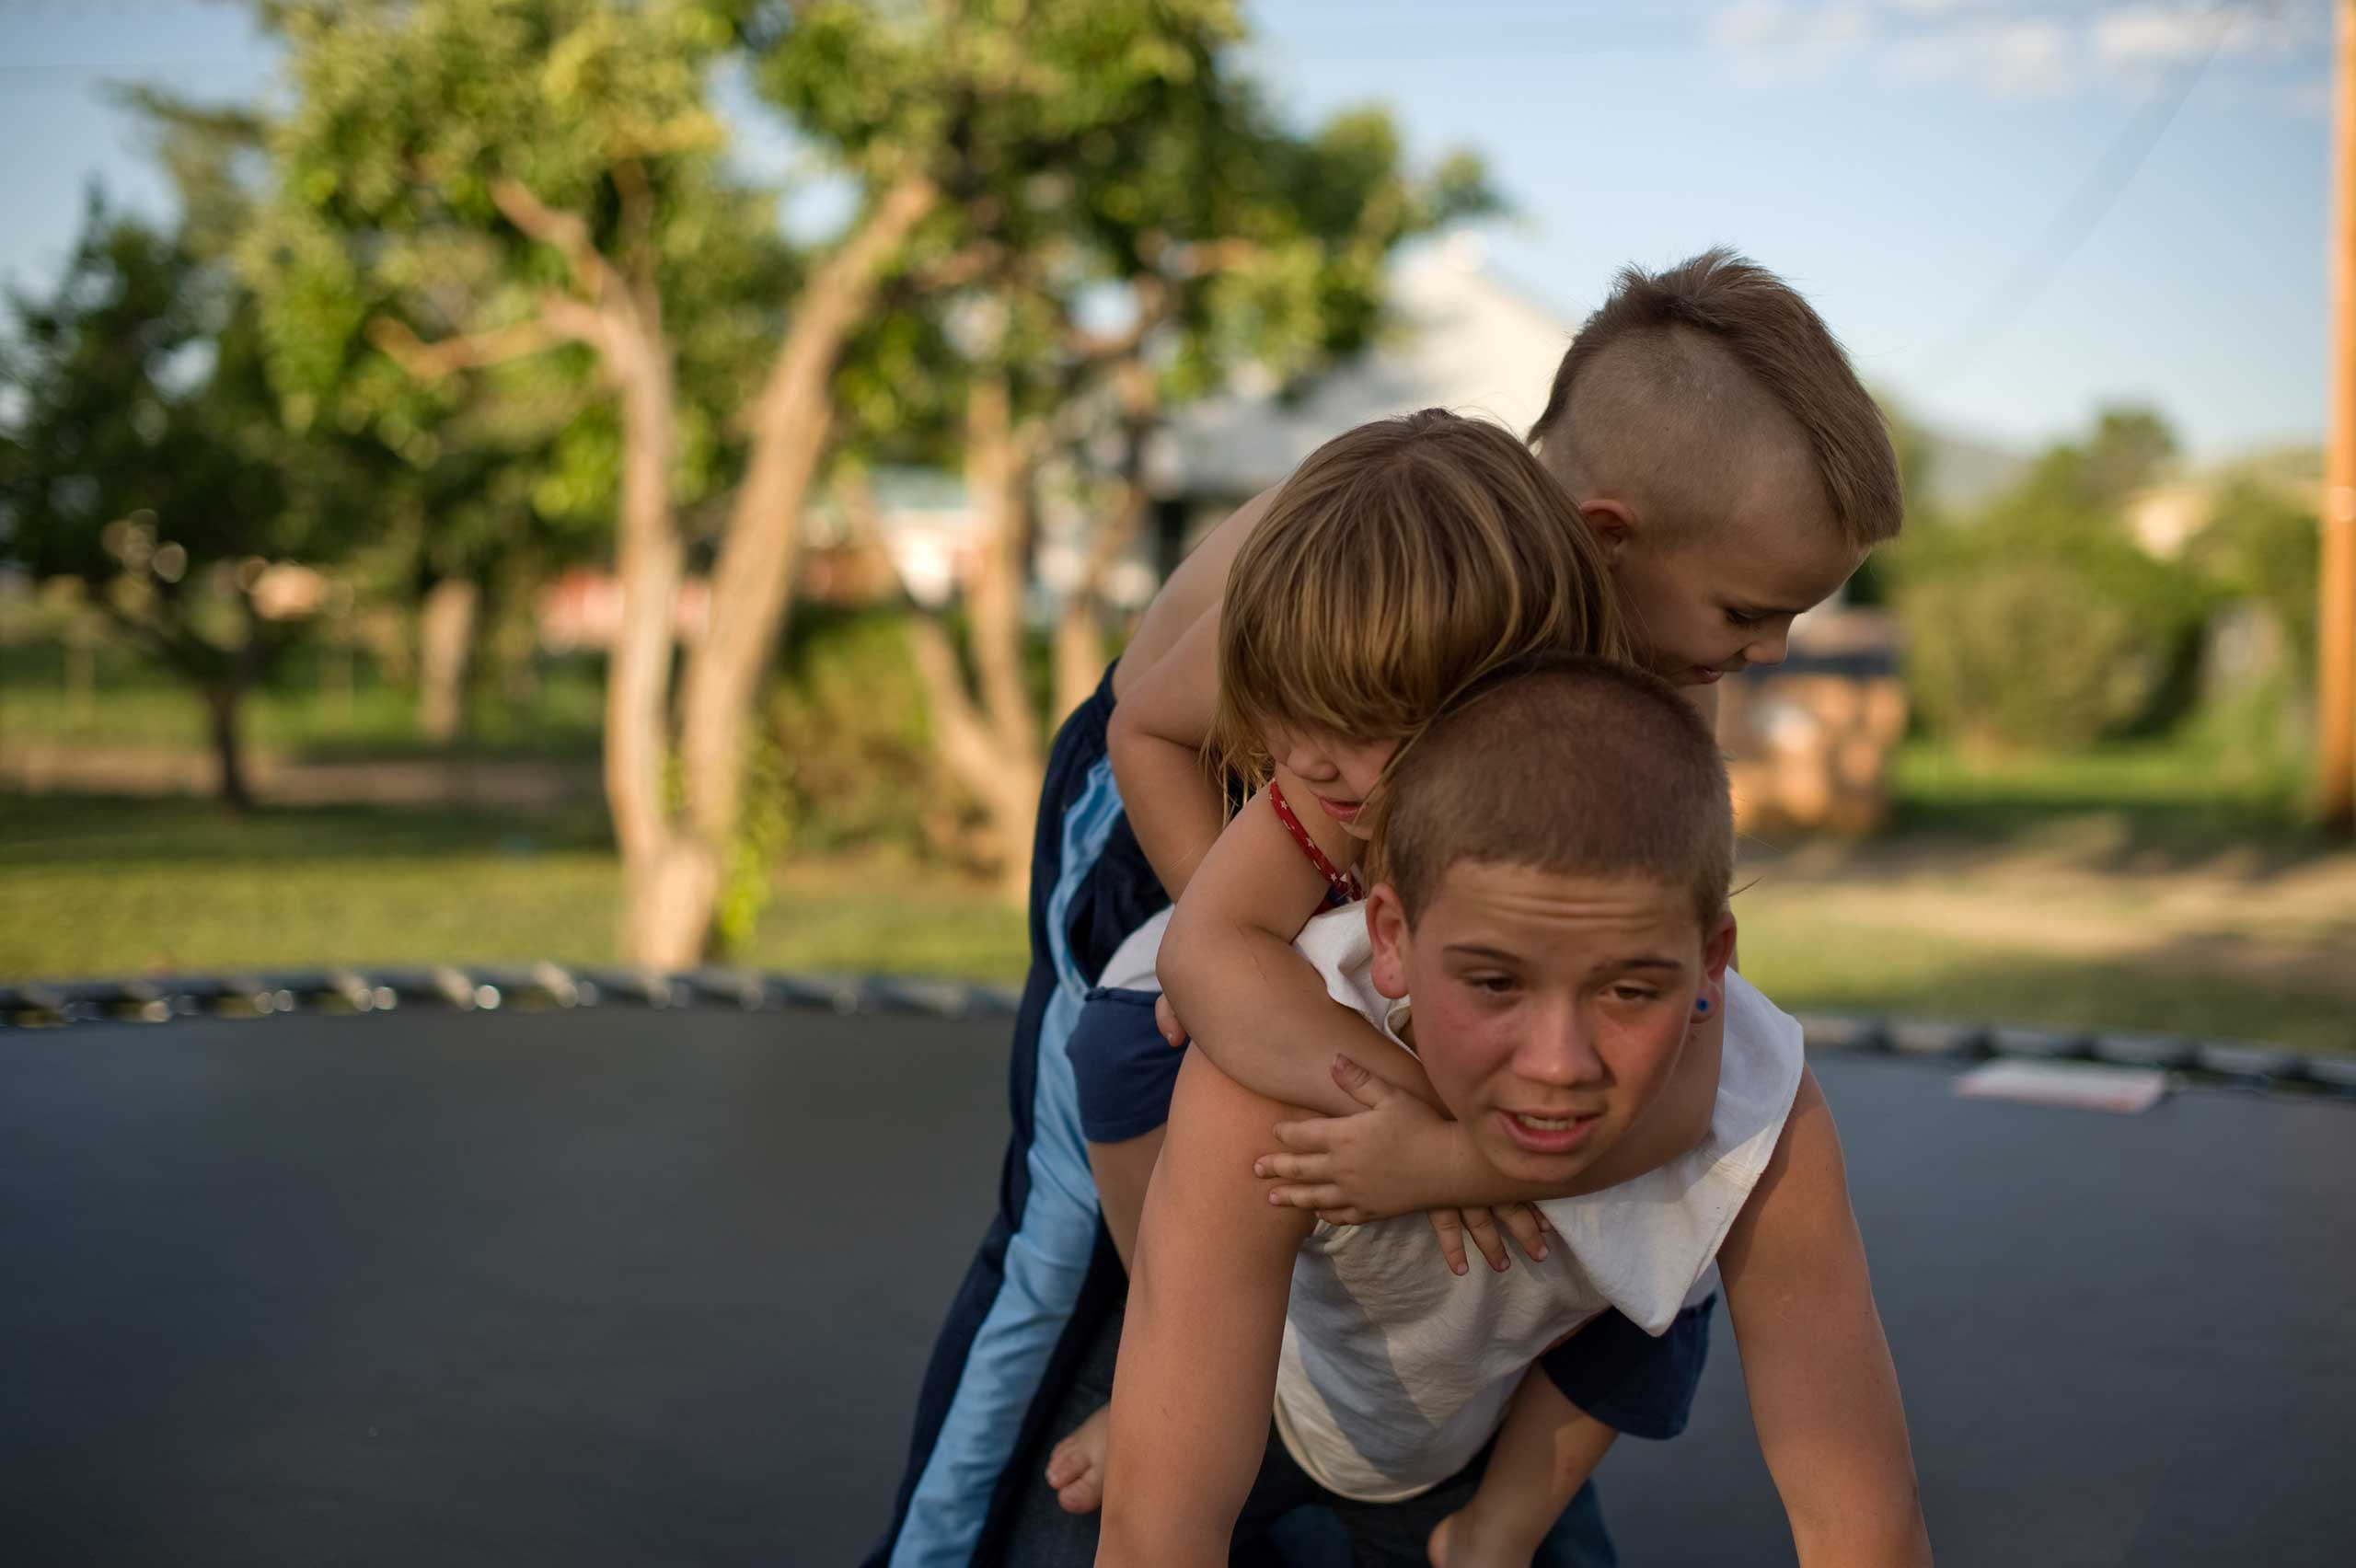 Vinny, Michael and Elycia play together on a trampoline. This is Vinny's first visit with his siblings since beginning his new life with his aunt.